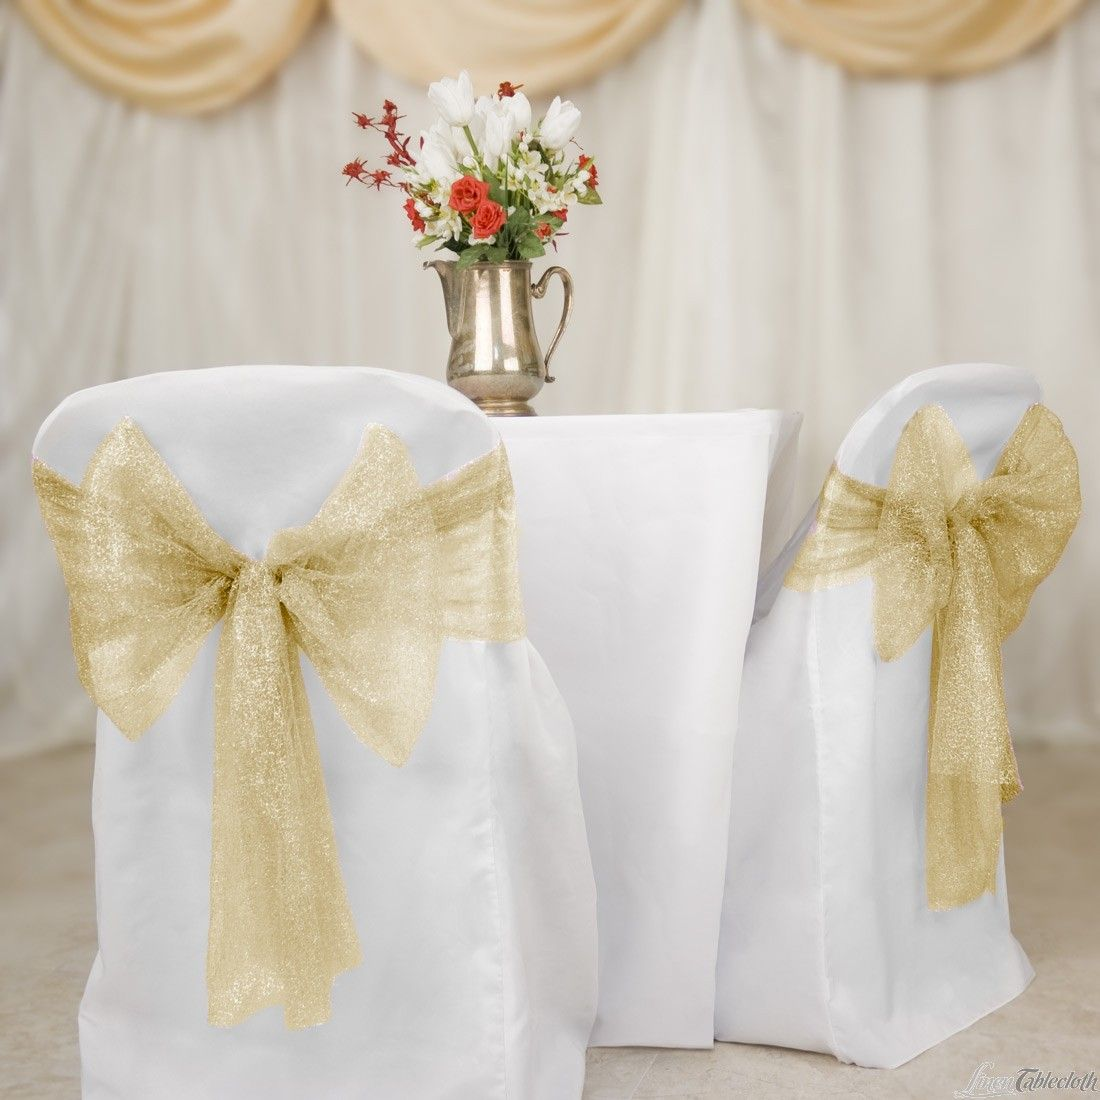 Gold Metallic Web Mesh Chair Sashes For Your Wedding Covers At Linentablecloth Use